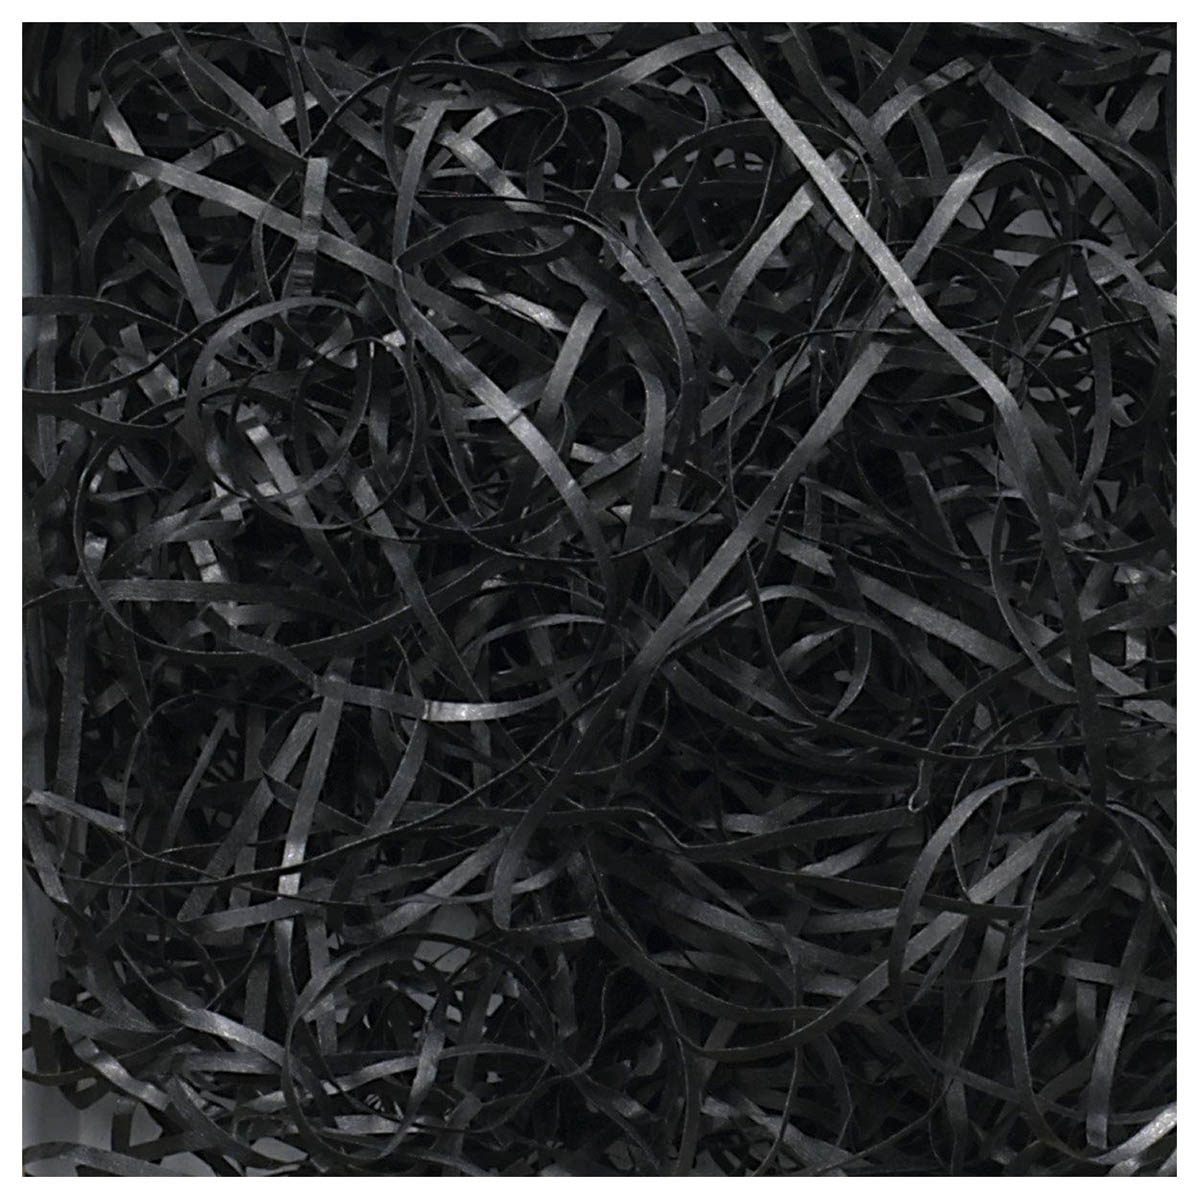 SODIAL(R) Luxury Shredded Paper Hamper Fill Basket Filler Shred Gift Filling Tissue 100g Black